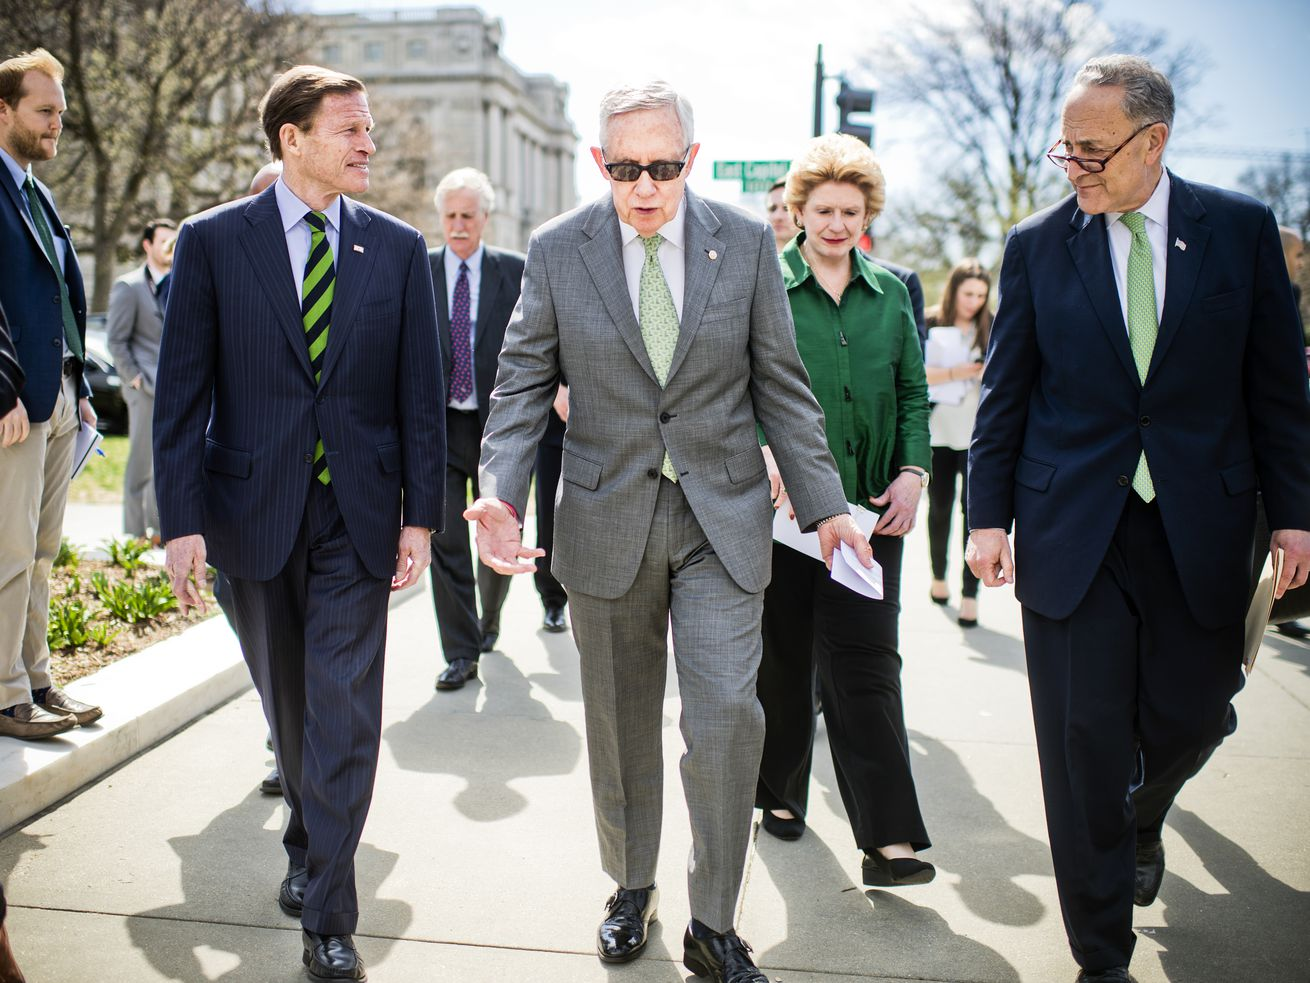 From left, Sens. Richard Blumenthal (D-CT), former Senate Minority Leader Harry Reid, Debbie Stabenow (D-MI), and Chuck Schumer (D-NY) walk to a news conference at the Supreme Court in 2016.